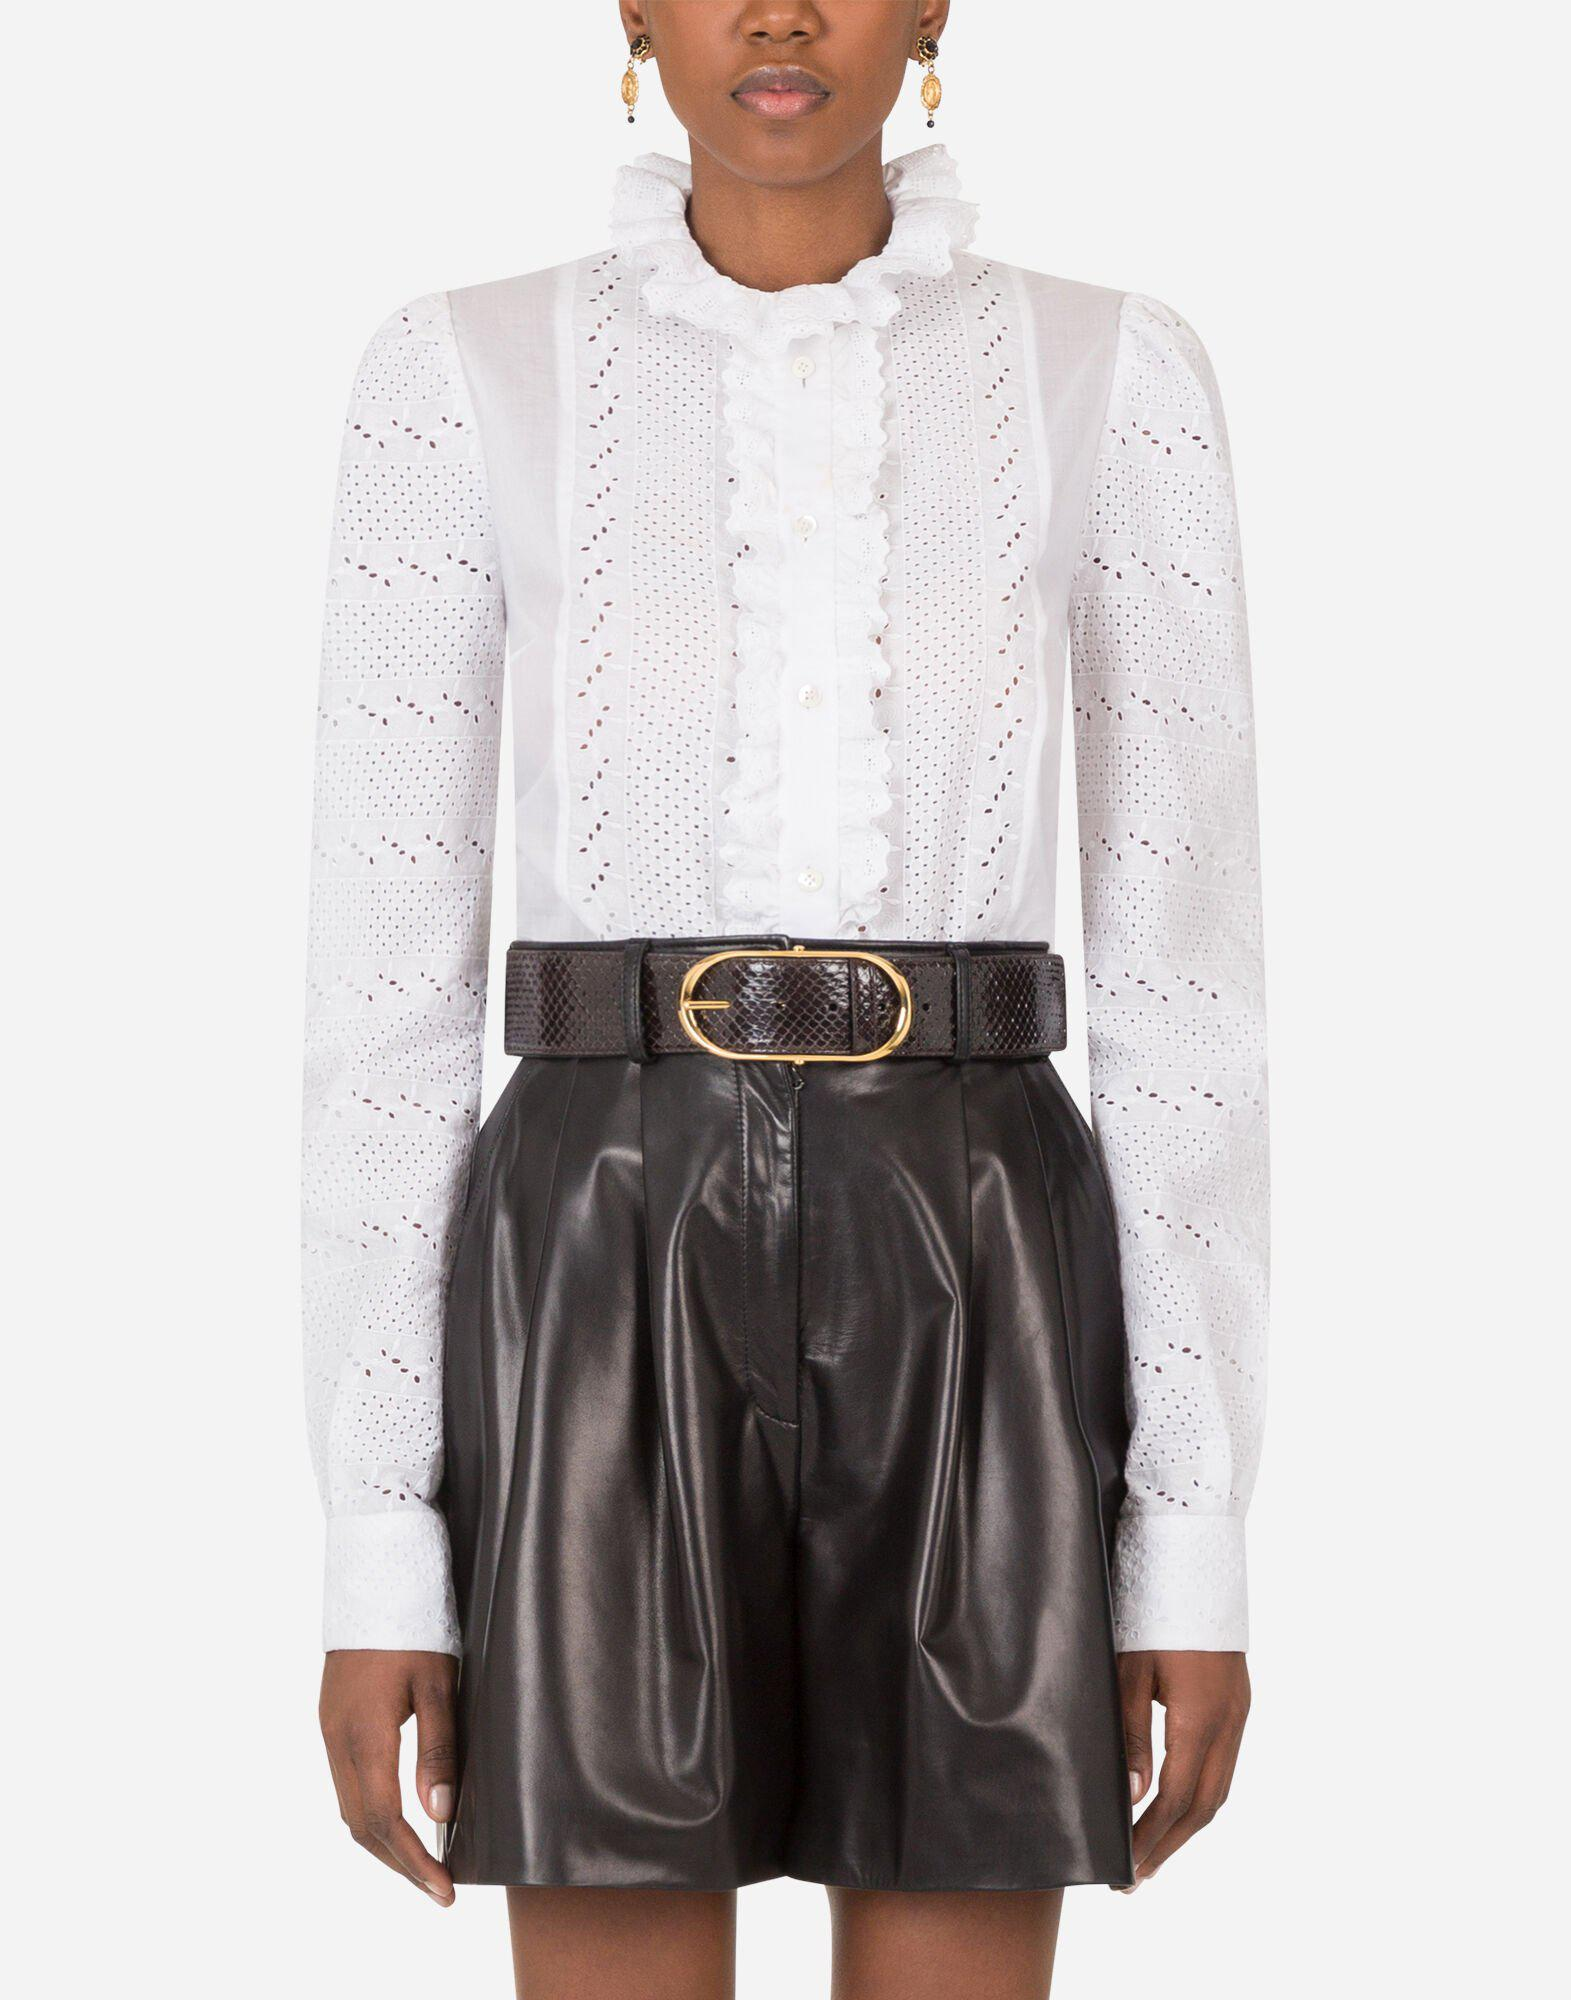 Broderie anglaise shirt with ruche details